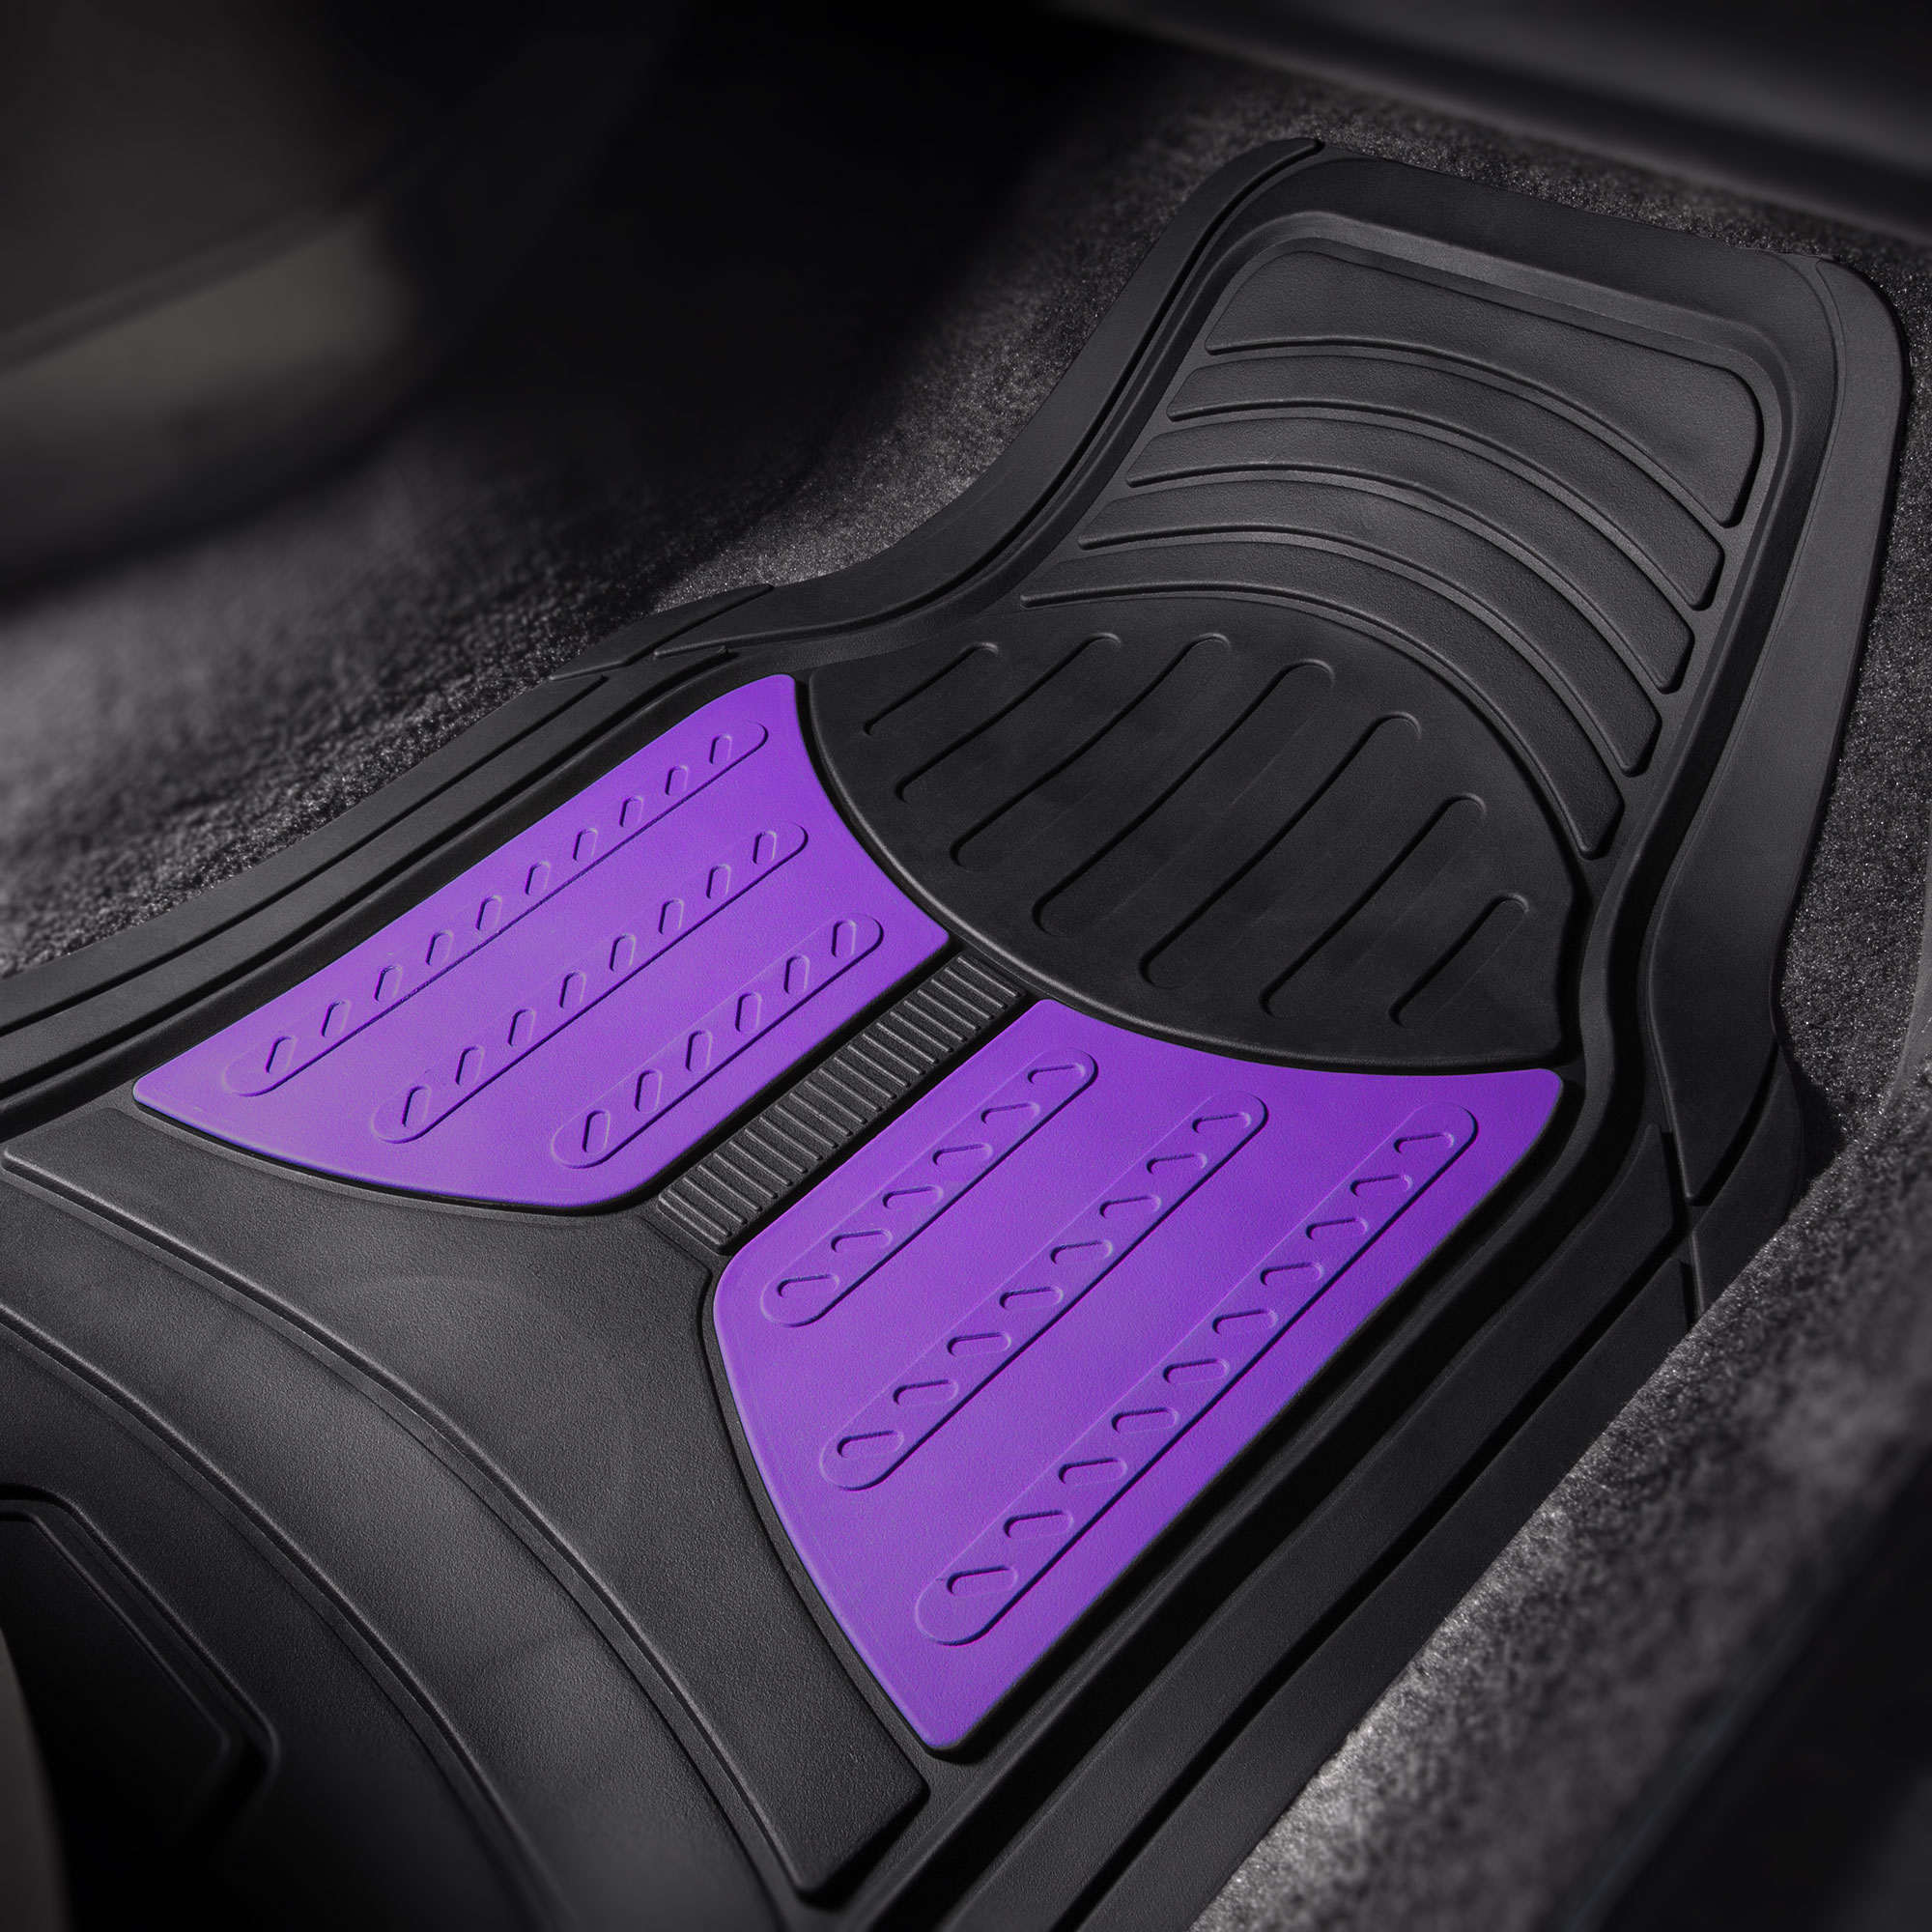 Car-Floor-Mats-for-All-Weather-Rubber-2-Tone-Design-4pc-Set-Heavy-Duty thumbnail 31